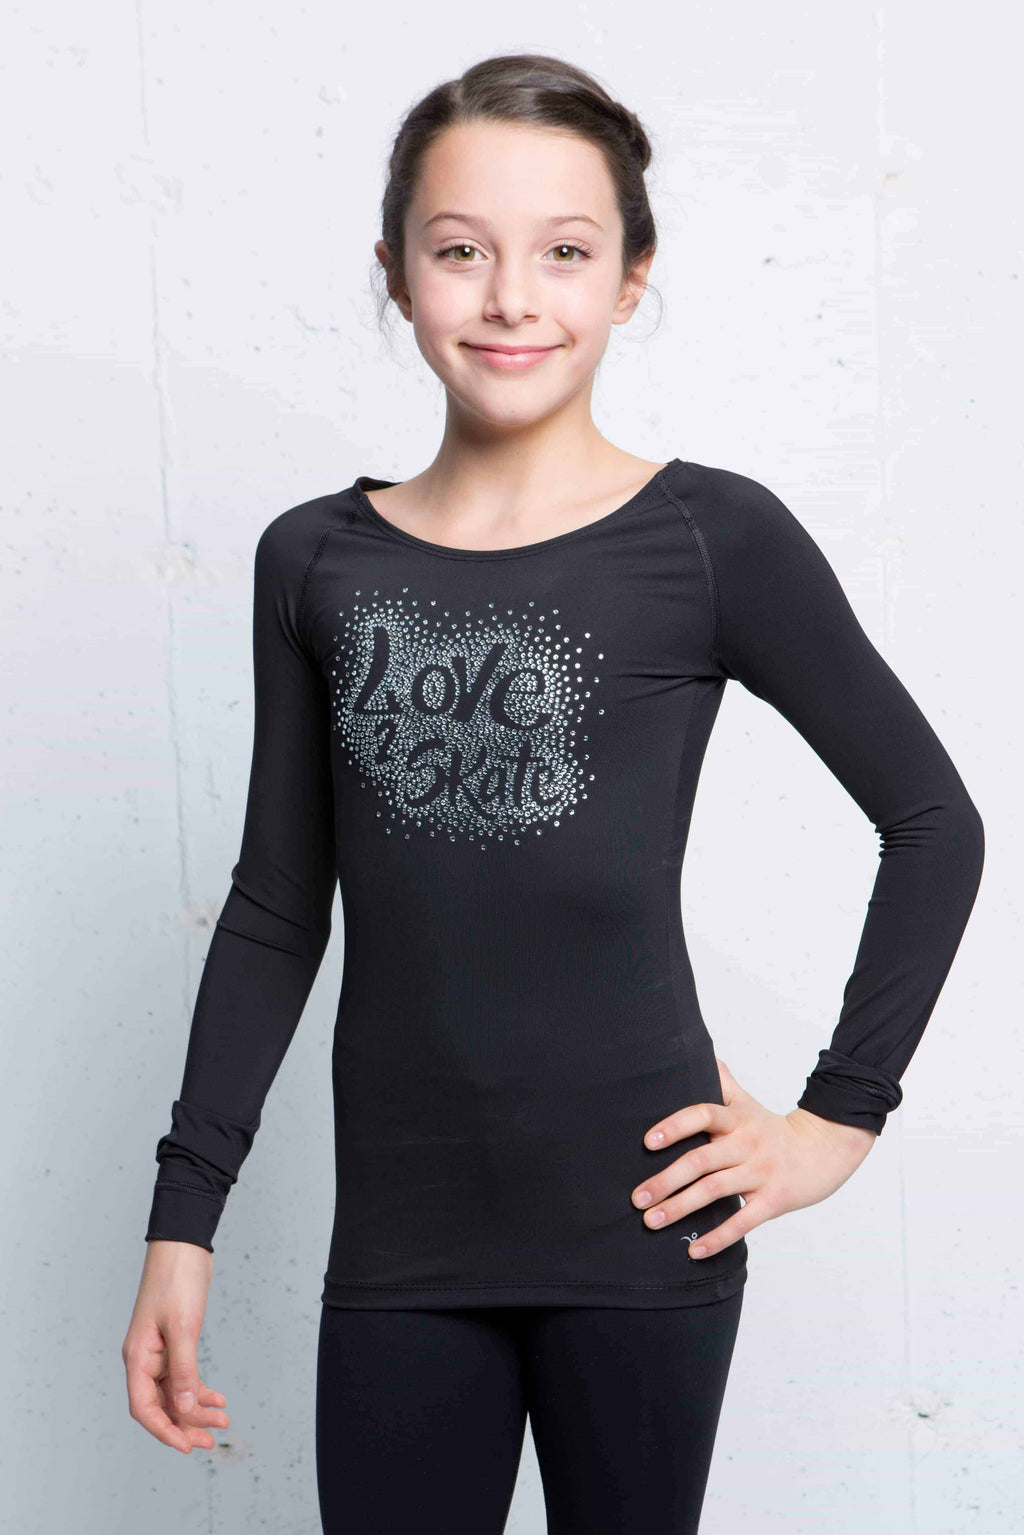 Love 2 SK8 Bling Xpression Top - Elite Xpression